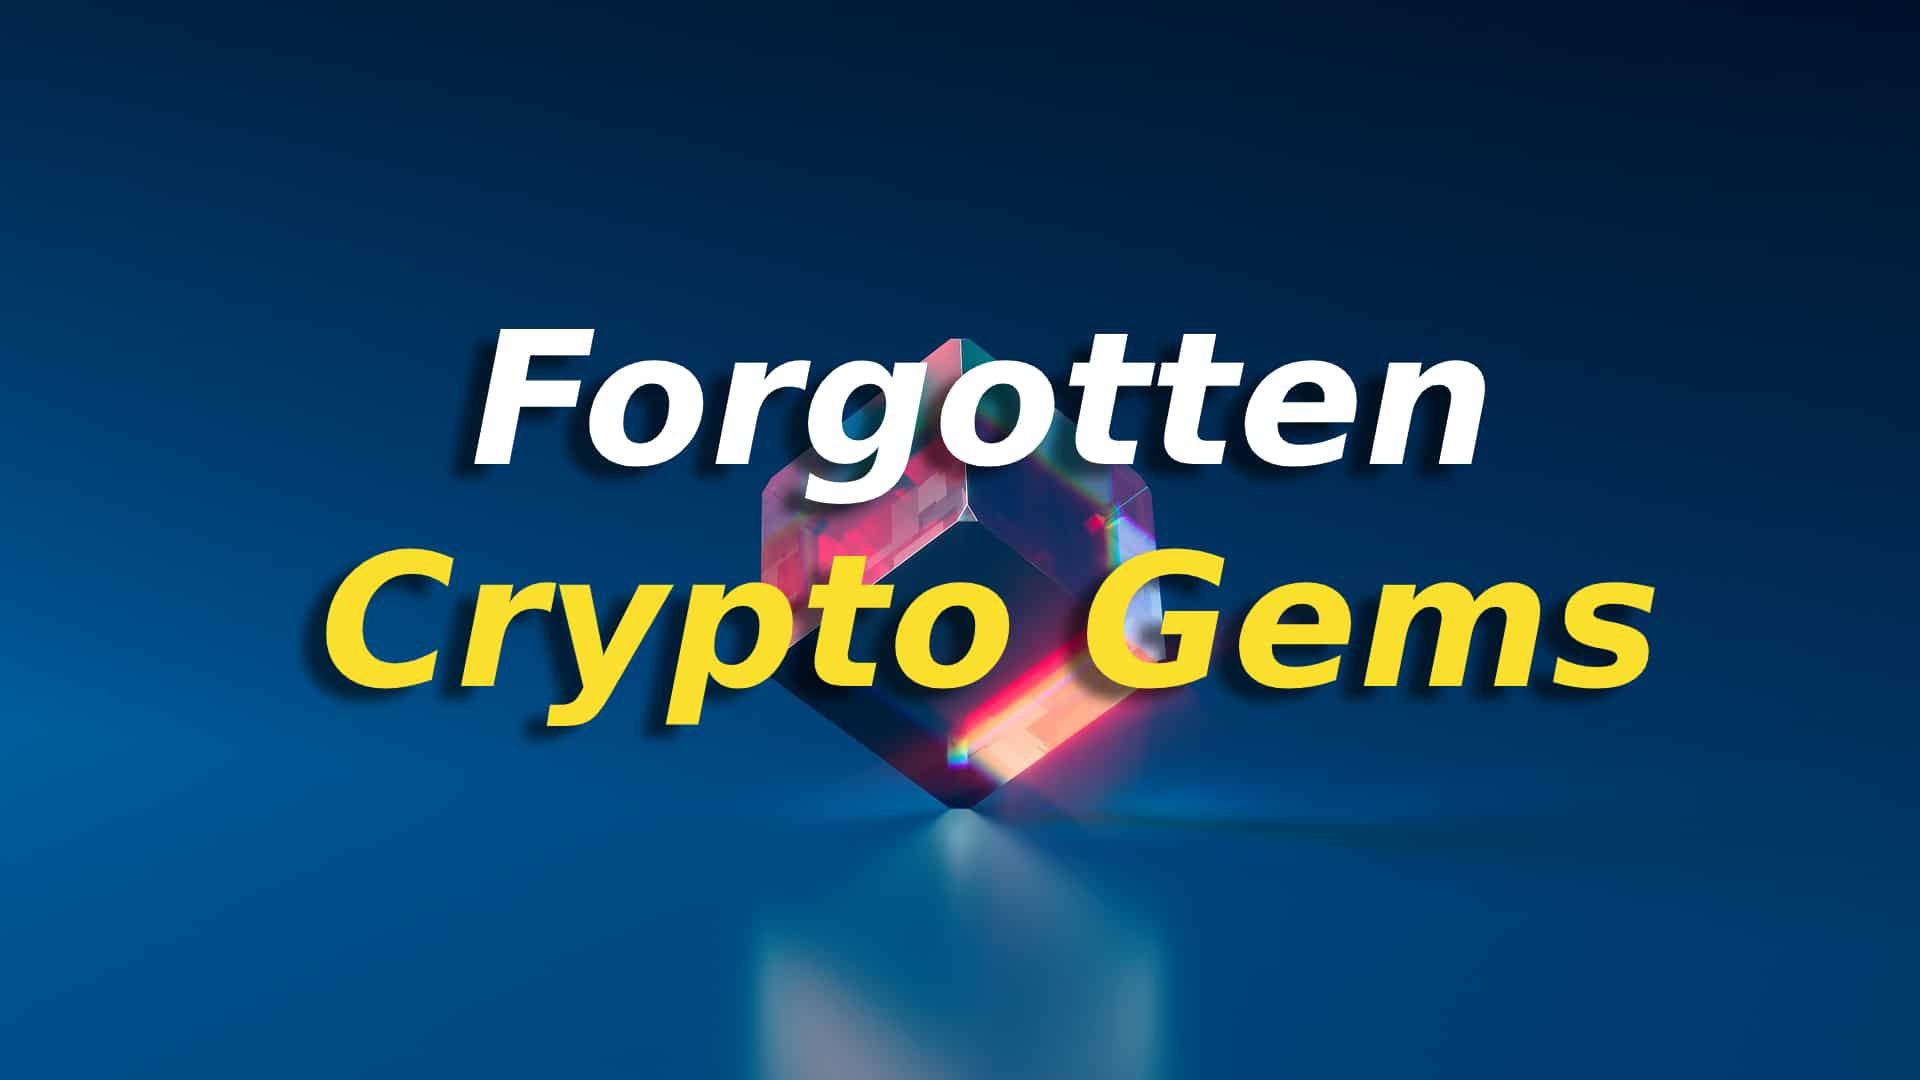 Forgotten Crypto Gems